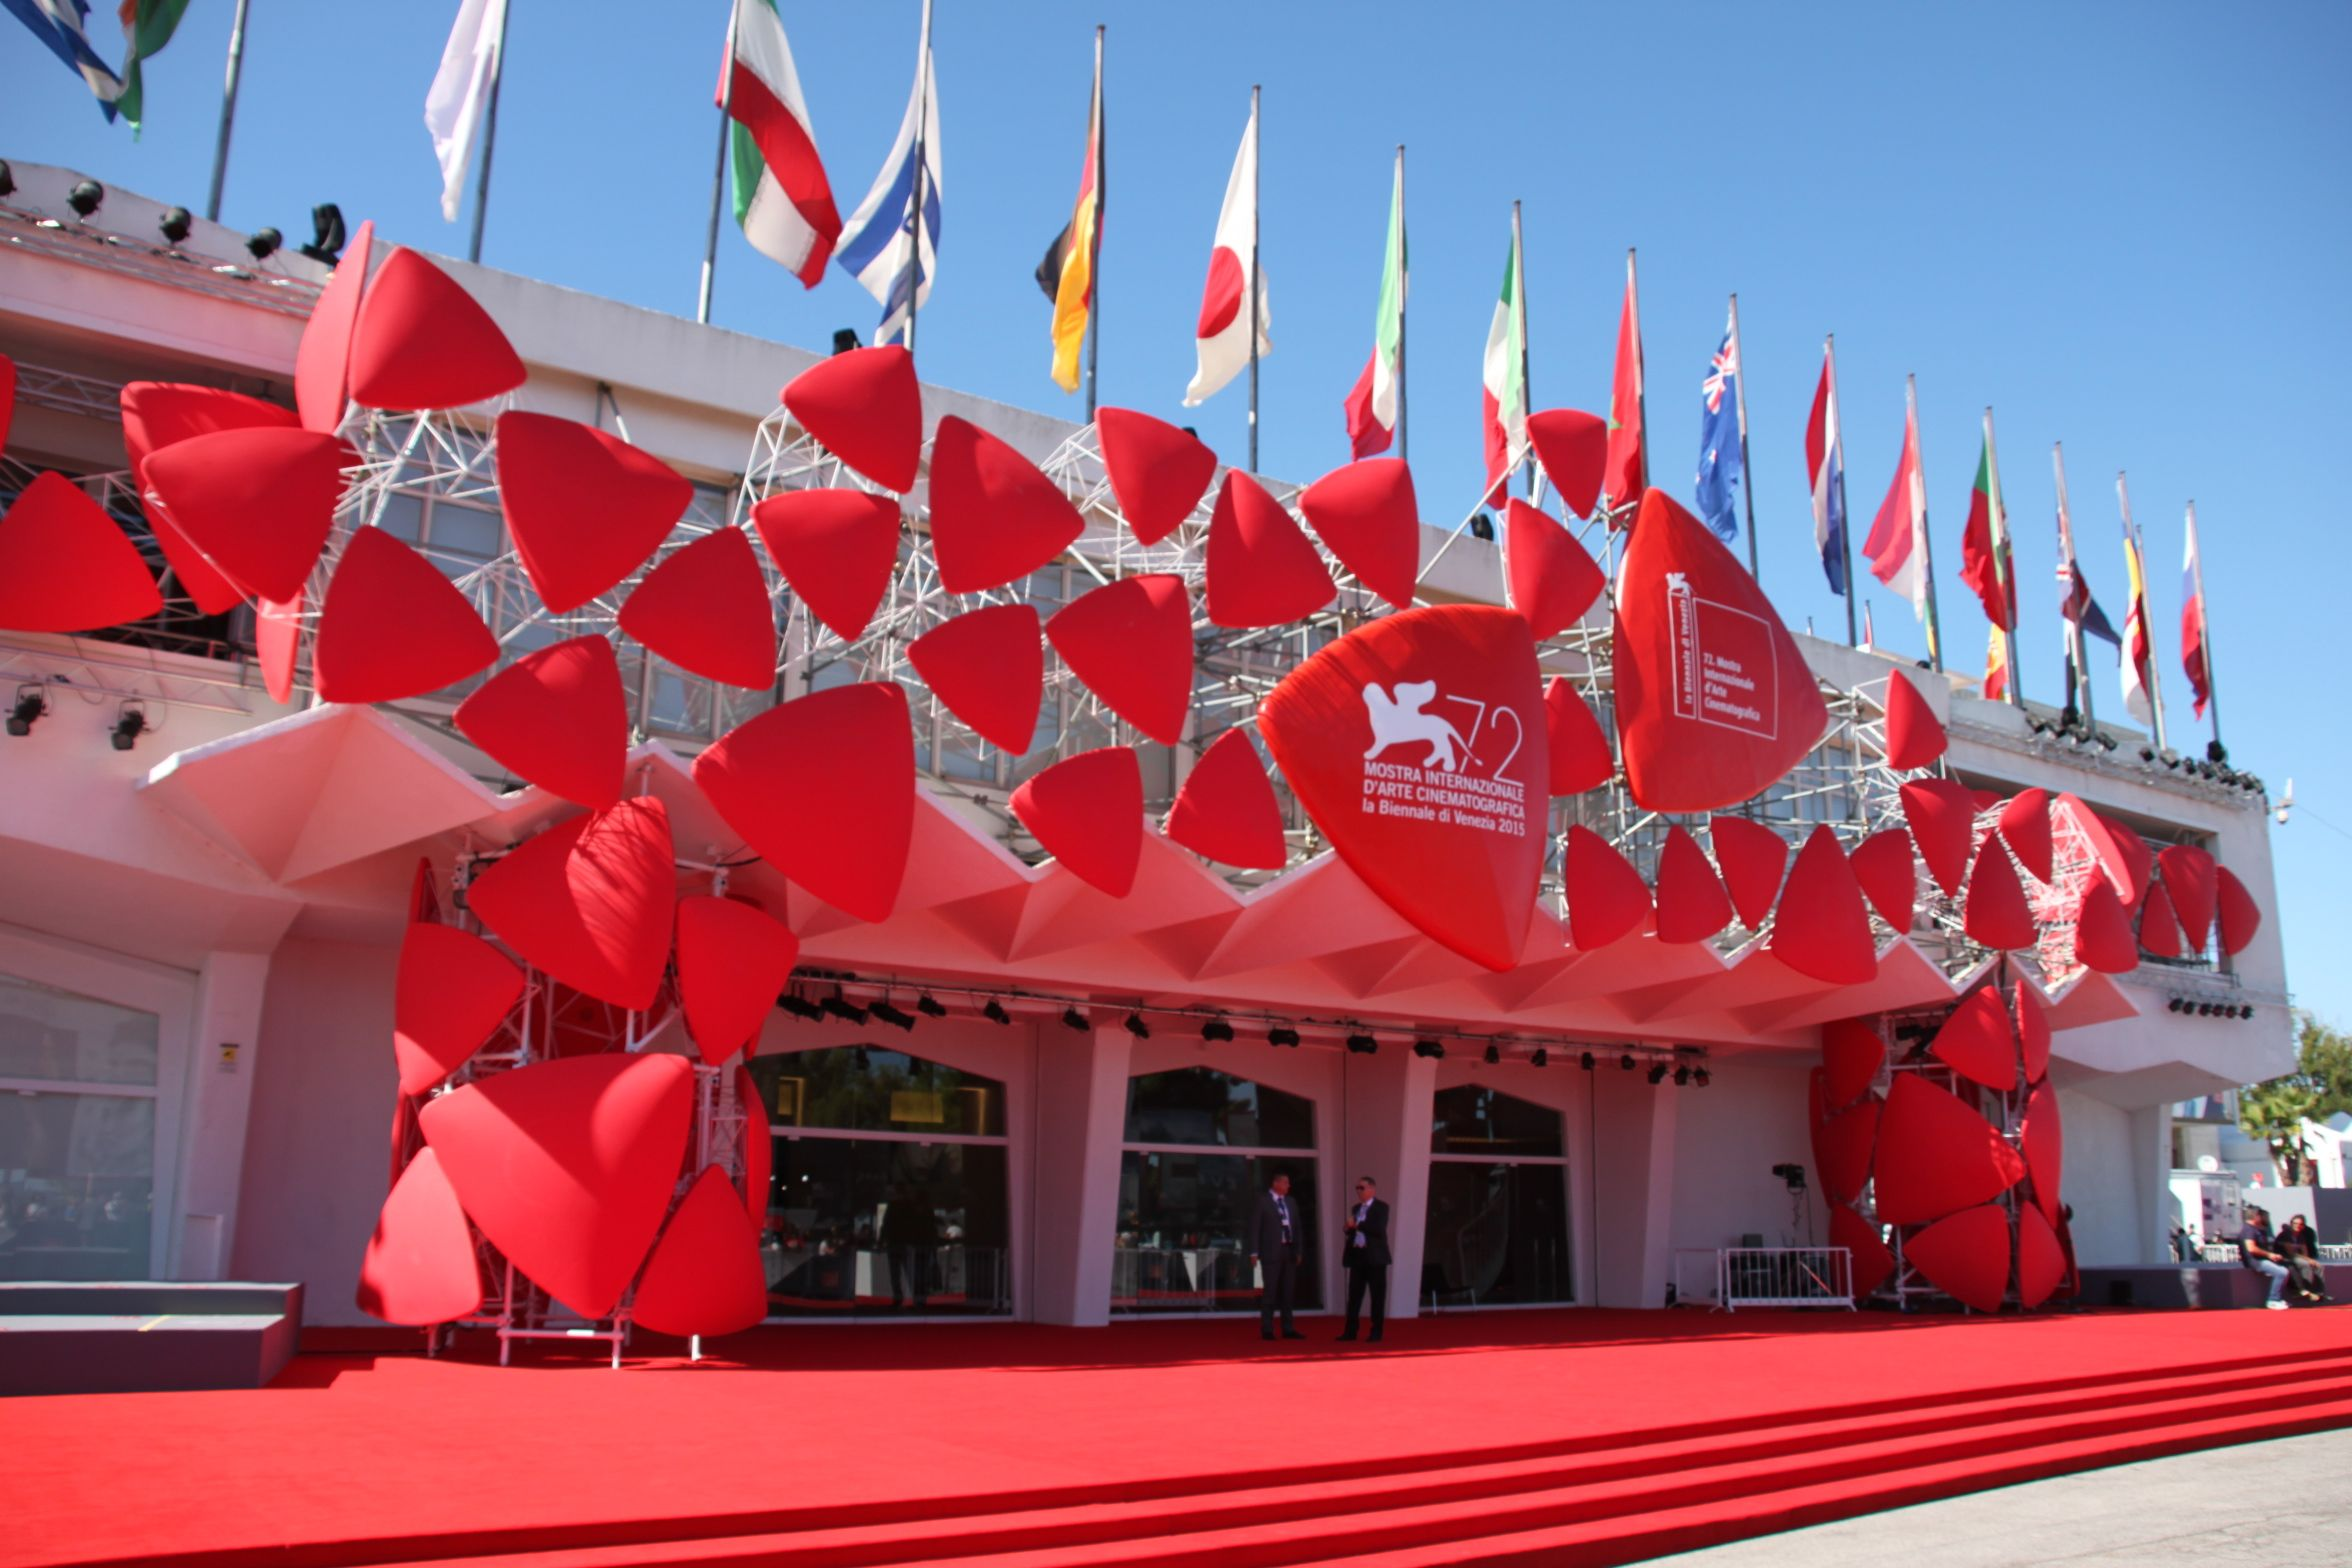 The red carpet at Venice Film Festival awaits!